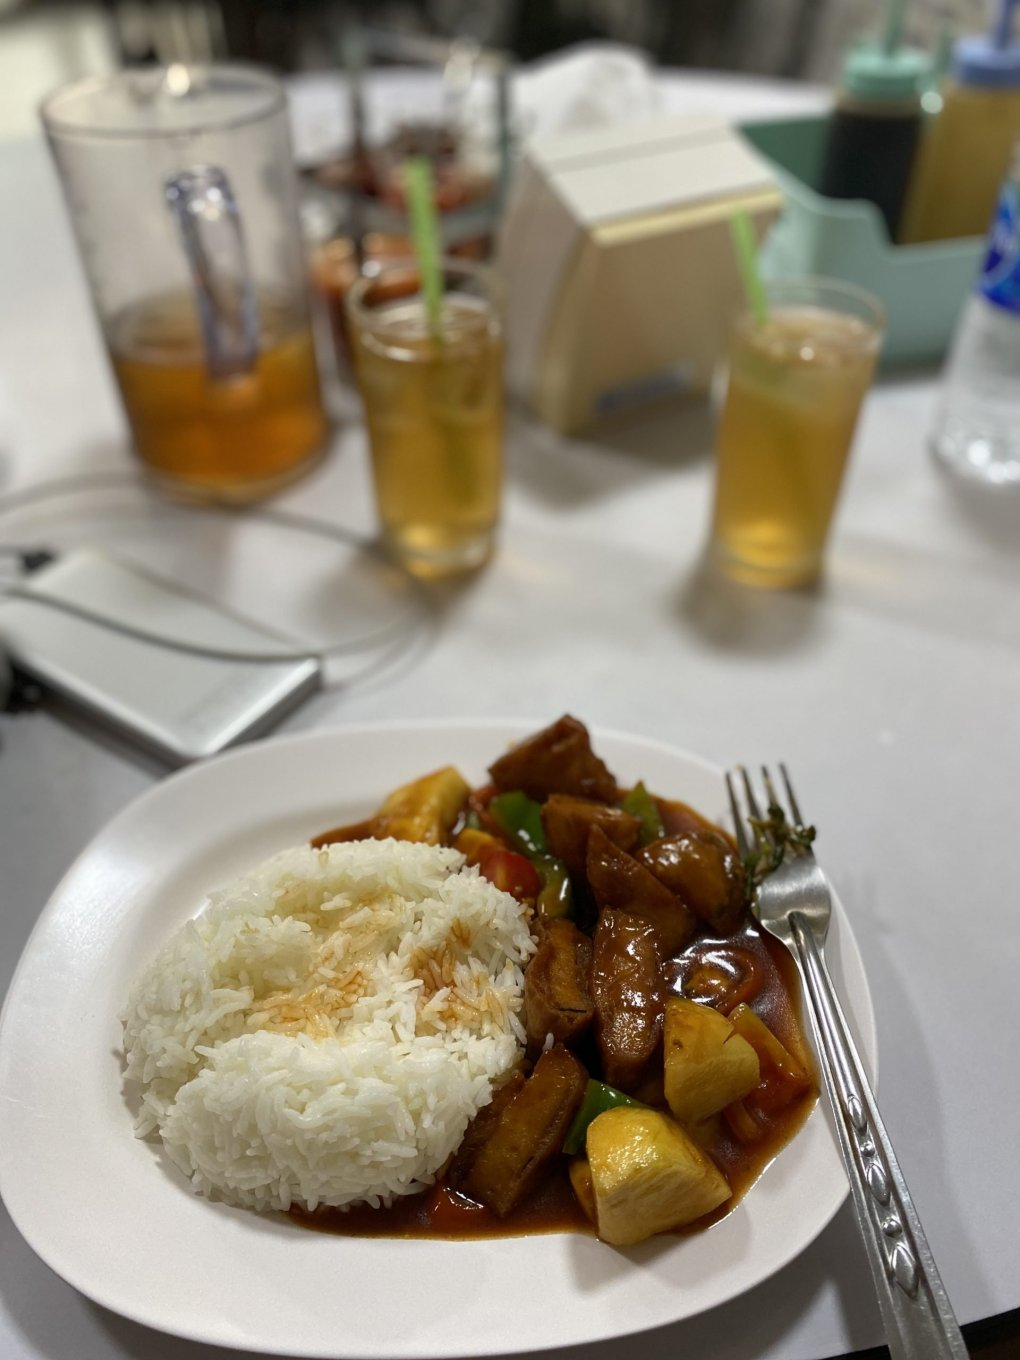 Sweet n sour vegan chicken and veggies with rice from Ruyi Vegetarian, Bangkok, Thailand